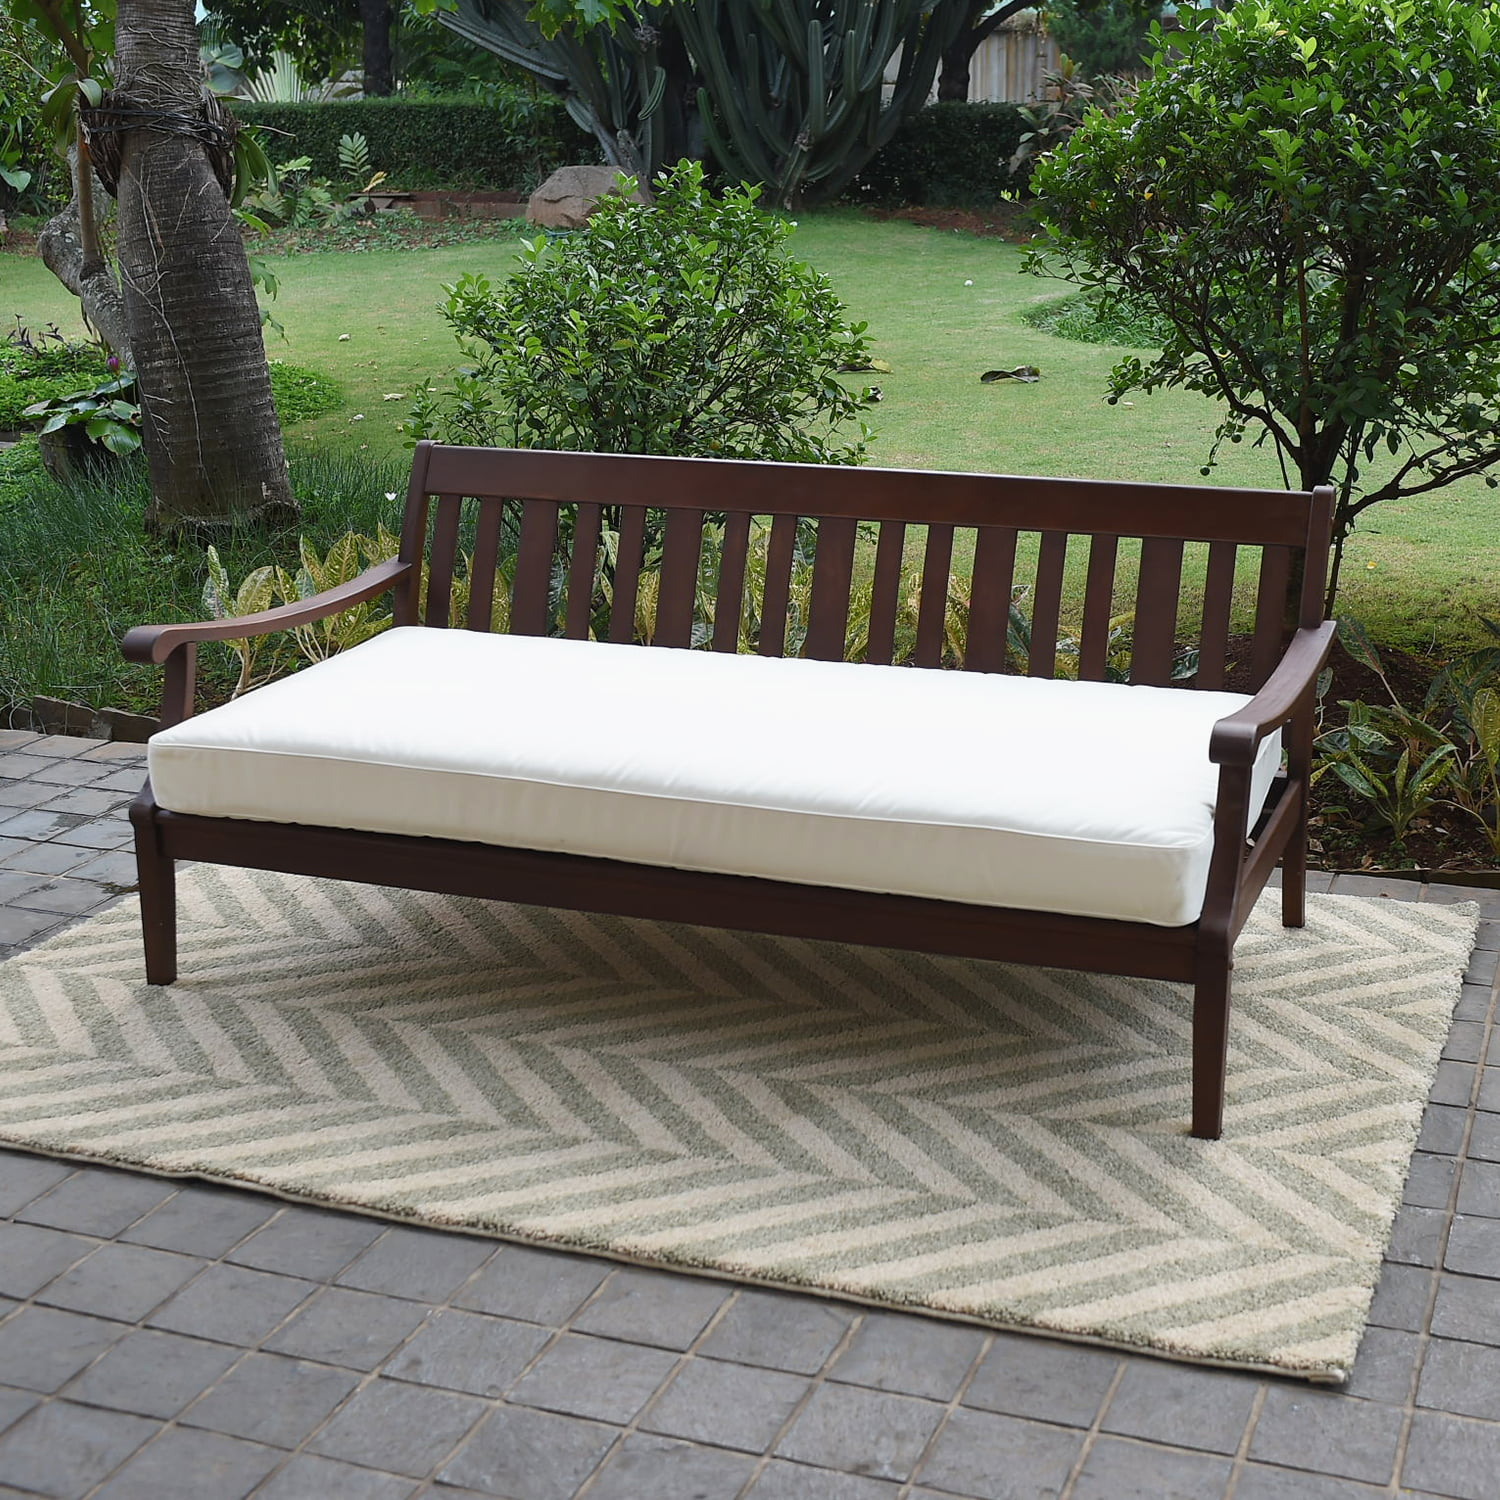 Outdoor Furniture Beds: Alston Wood Outdoor Sofa Daybed Day Bed With White Cushion